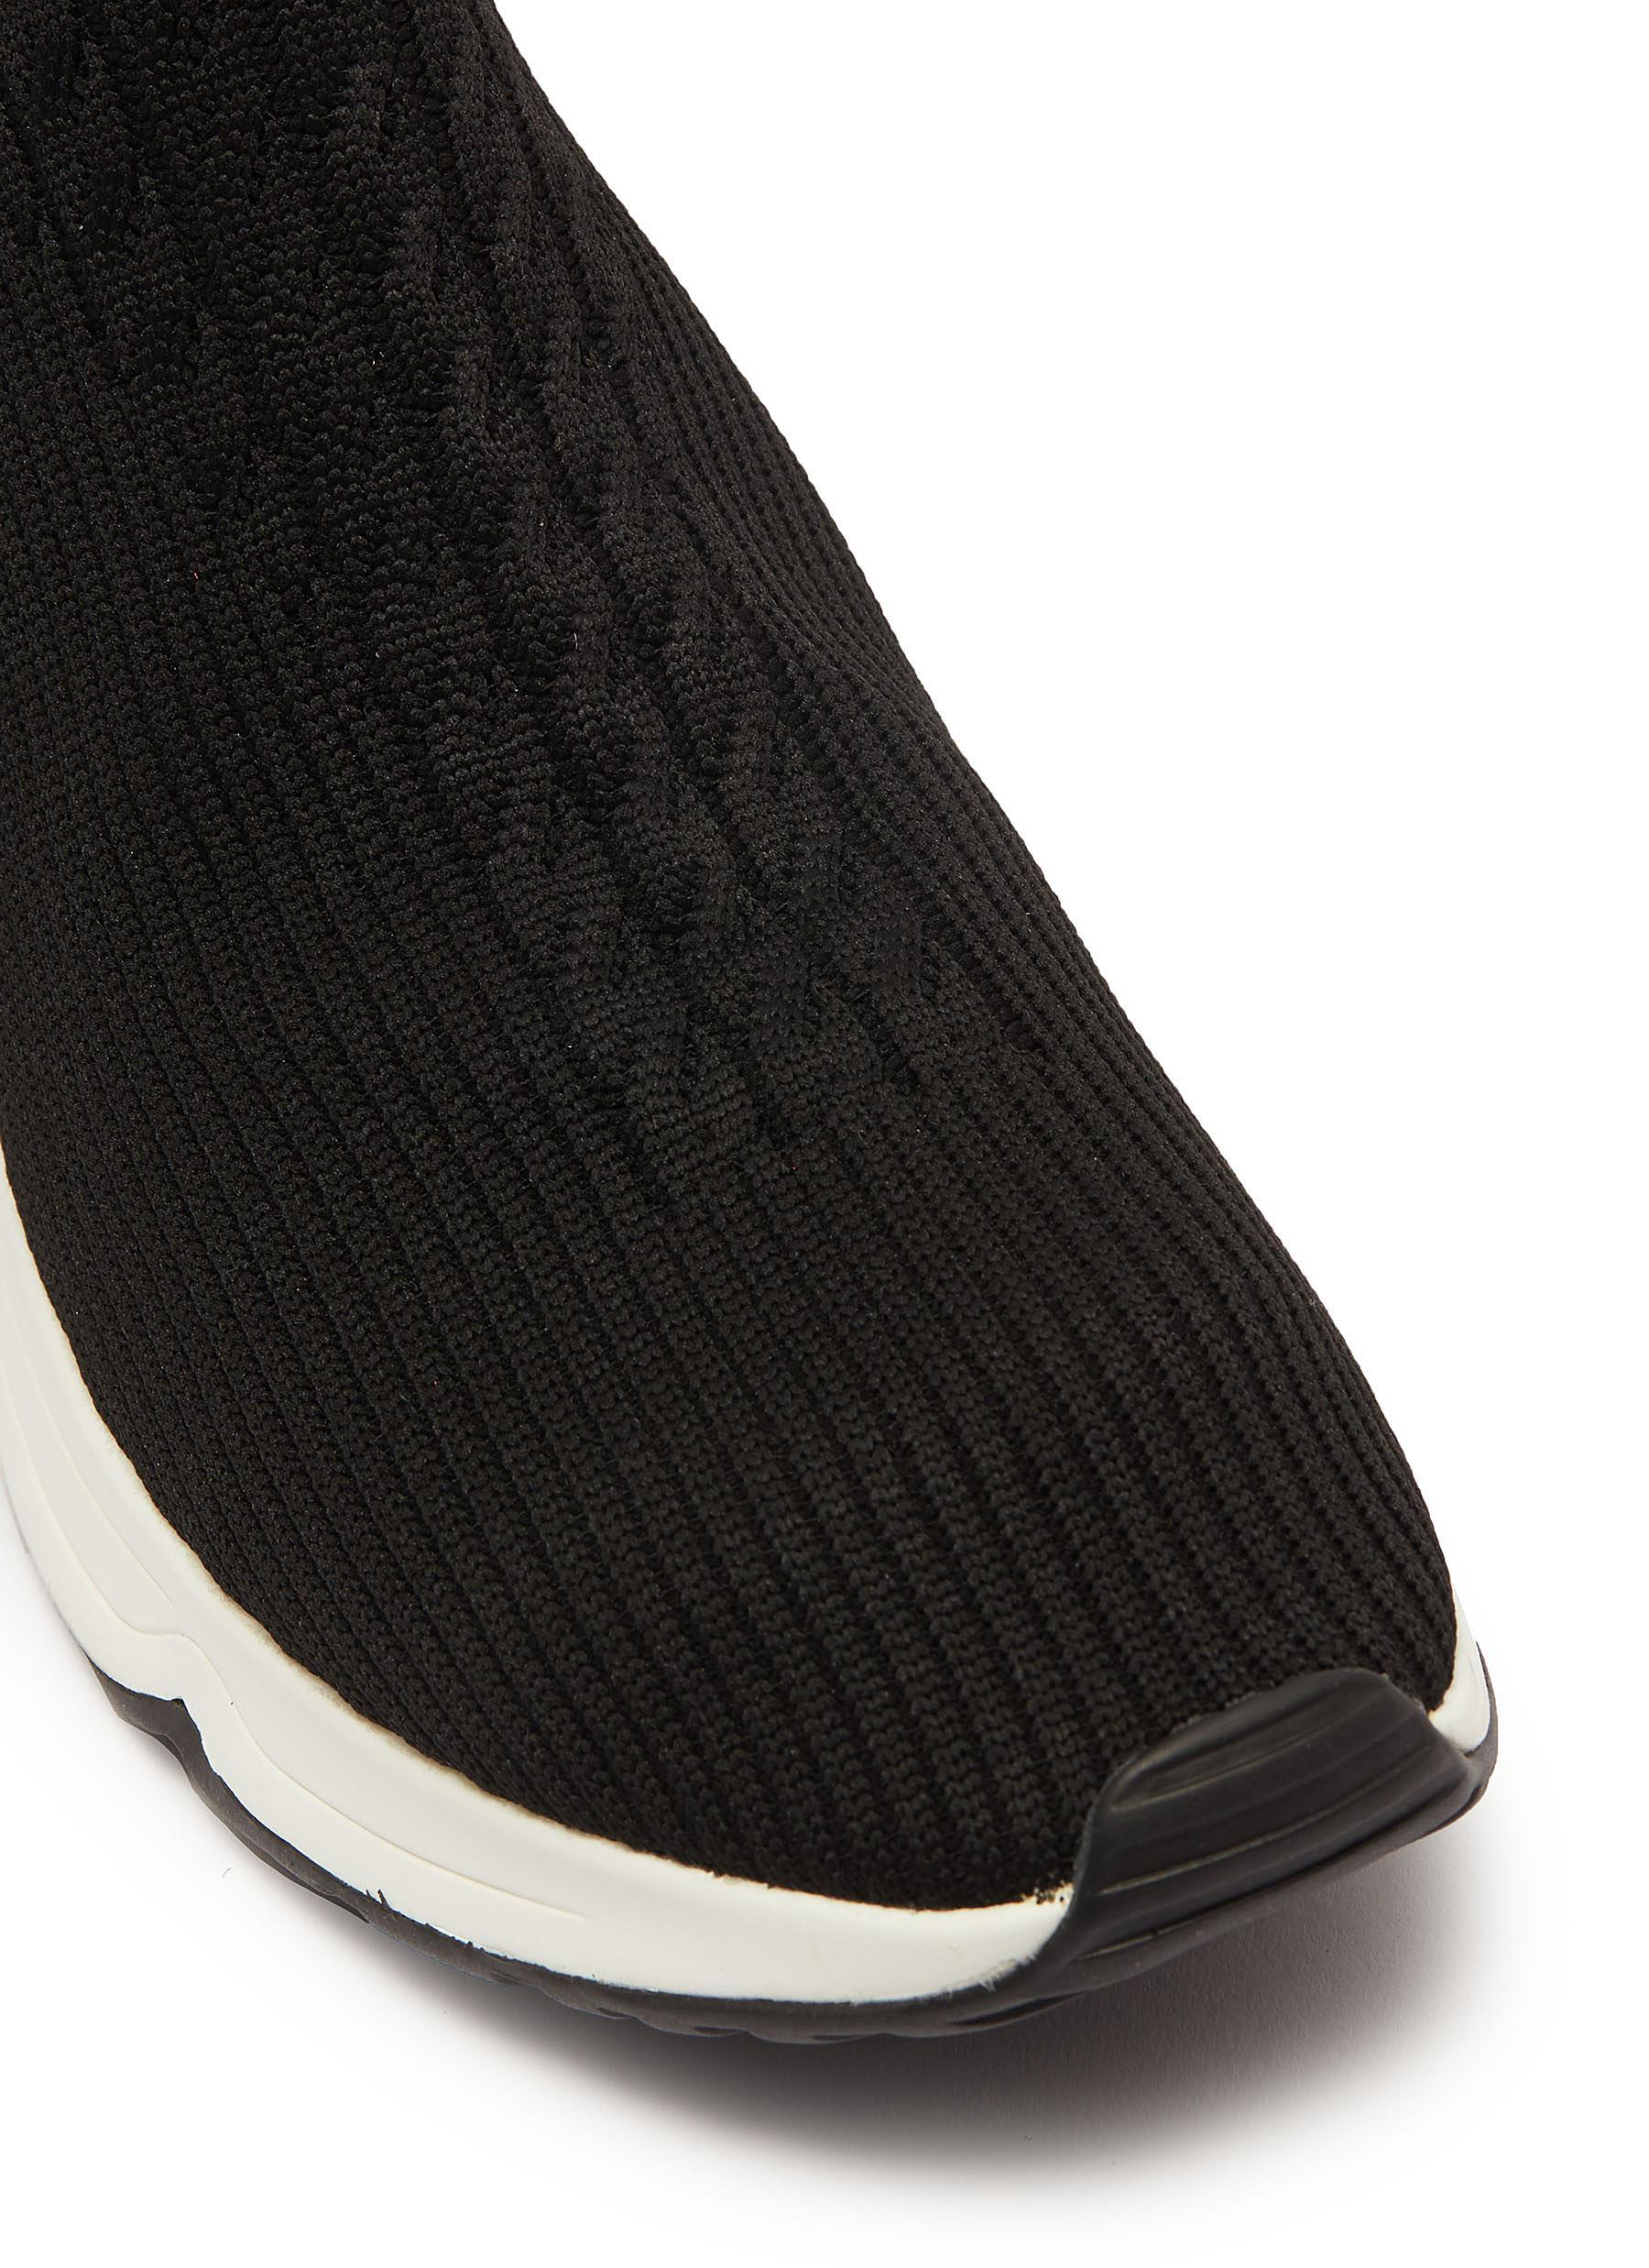 82a0b9322 Ash  lola  Thigh High Knit Sock Sneaker Boots in Black - Lyst